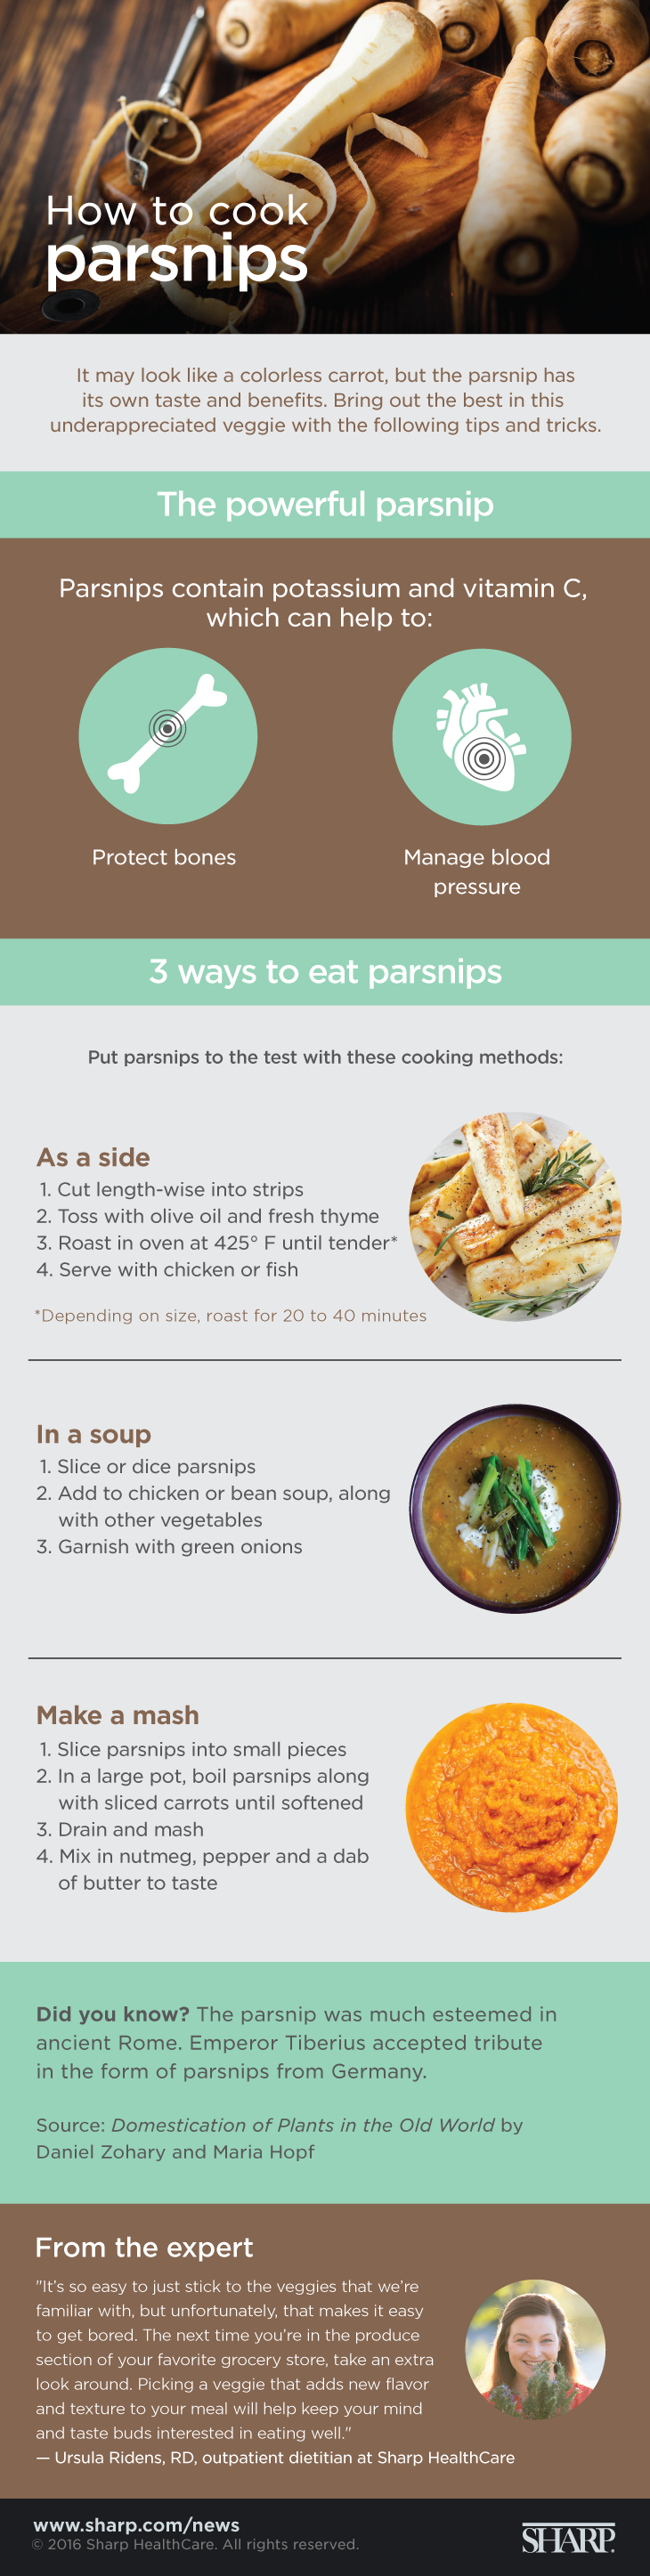 How to cook parsnips (infographic). It may look like a colorless carrot, but the parsnip has its own taste and benefits. Parsnips contain potassium and vitamin C, which can help to protect bones and manage blood pressure. The parsnip was also much esteemed in ancient Rome. According to The Domestication of Plants in the Old World by Daniel Zohary and Maria Hopf, Emperor Tiberius accepted a tribute in the form of parsnips from Germany. Bring out the best in this underappreciated veggie with the following three ways to eat parsnips: As a side. 1. Cut length-wise into strips. 2. Toss with olive oil and fresh thyme. 3. Roast in oven at 425 degrees F until tender (20 to 40 minutes, depending on size). 4. Serve with chicken or fish. In a soup. 1. Slice or dice parsnips. 2. Add to chicken or bean soup, along with other vegetables. 3. Garnish with green onions. Make a mash. 1. Slice parsnips into small pieces. 2. In a large pot, boil parsnips along with sliced carrots until soft. 3. Drain and mash. 4. Mix in nutmeg, pepper and a dab of butter to taste. It's so easy to just stick to the veggies that we're familiar with, but unfortunately, that makes it easy to get bored, says Ursula Ridens, RD, an outpatient dietitian at Sharp HealthCare. The next time you're in the produce section of your favorite grocery store, take an extra look around. Picking a veggie that adds new flavor and texture to your meal will help keep your mind and taste buds interested in eating well.